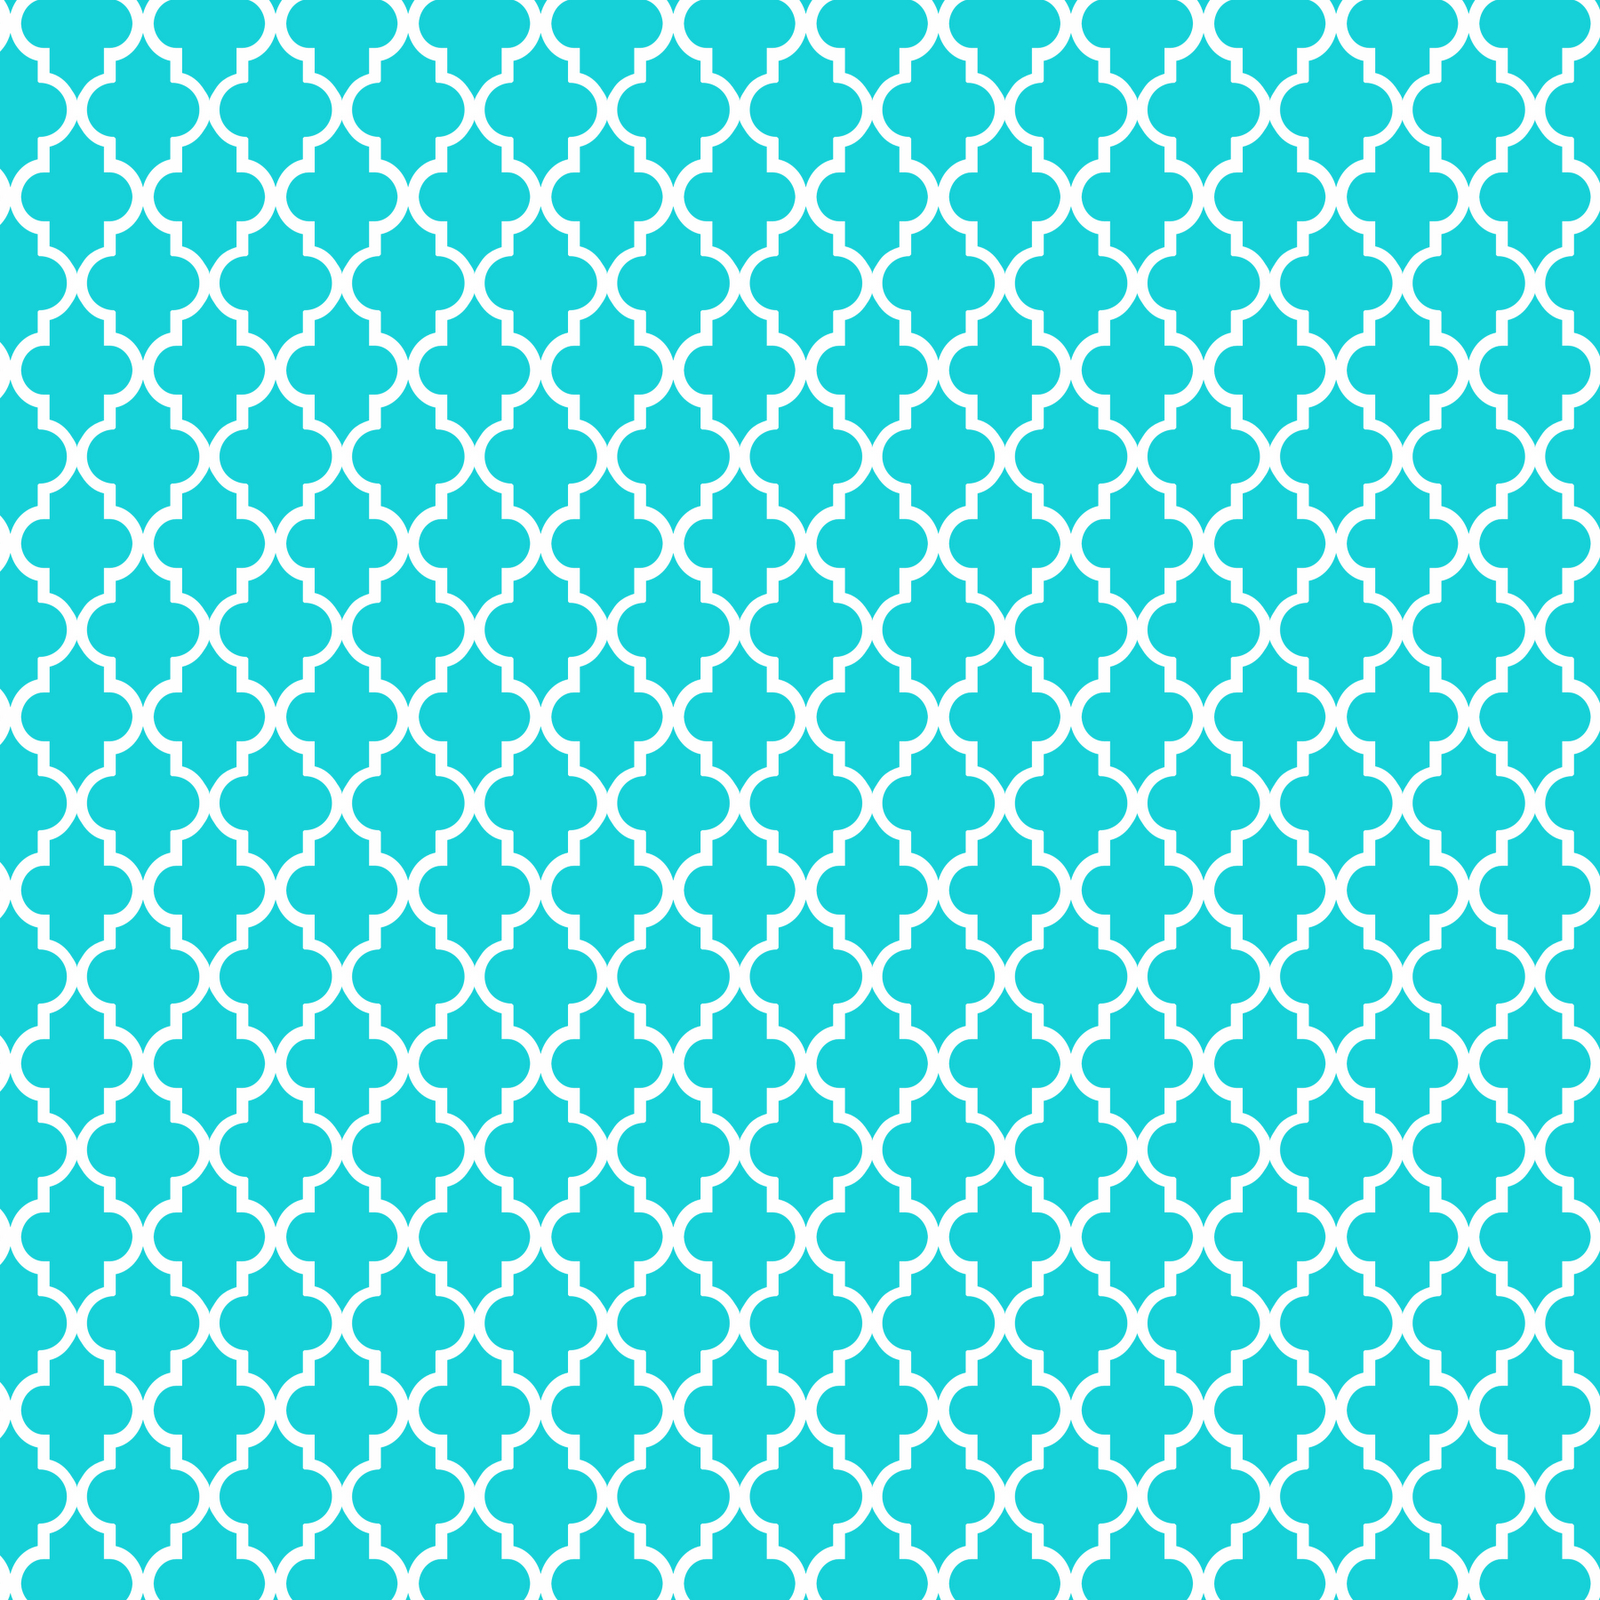 Phi Mu Quatrefoil Free Printable Patterns! No Pink Though - Free Printable Moroccan Pattern